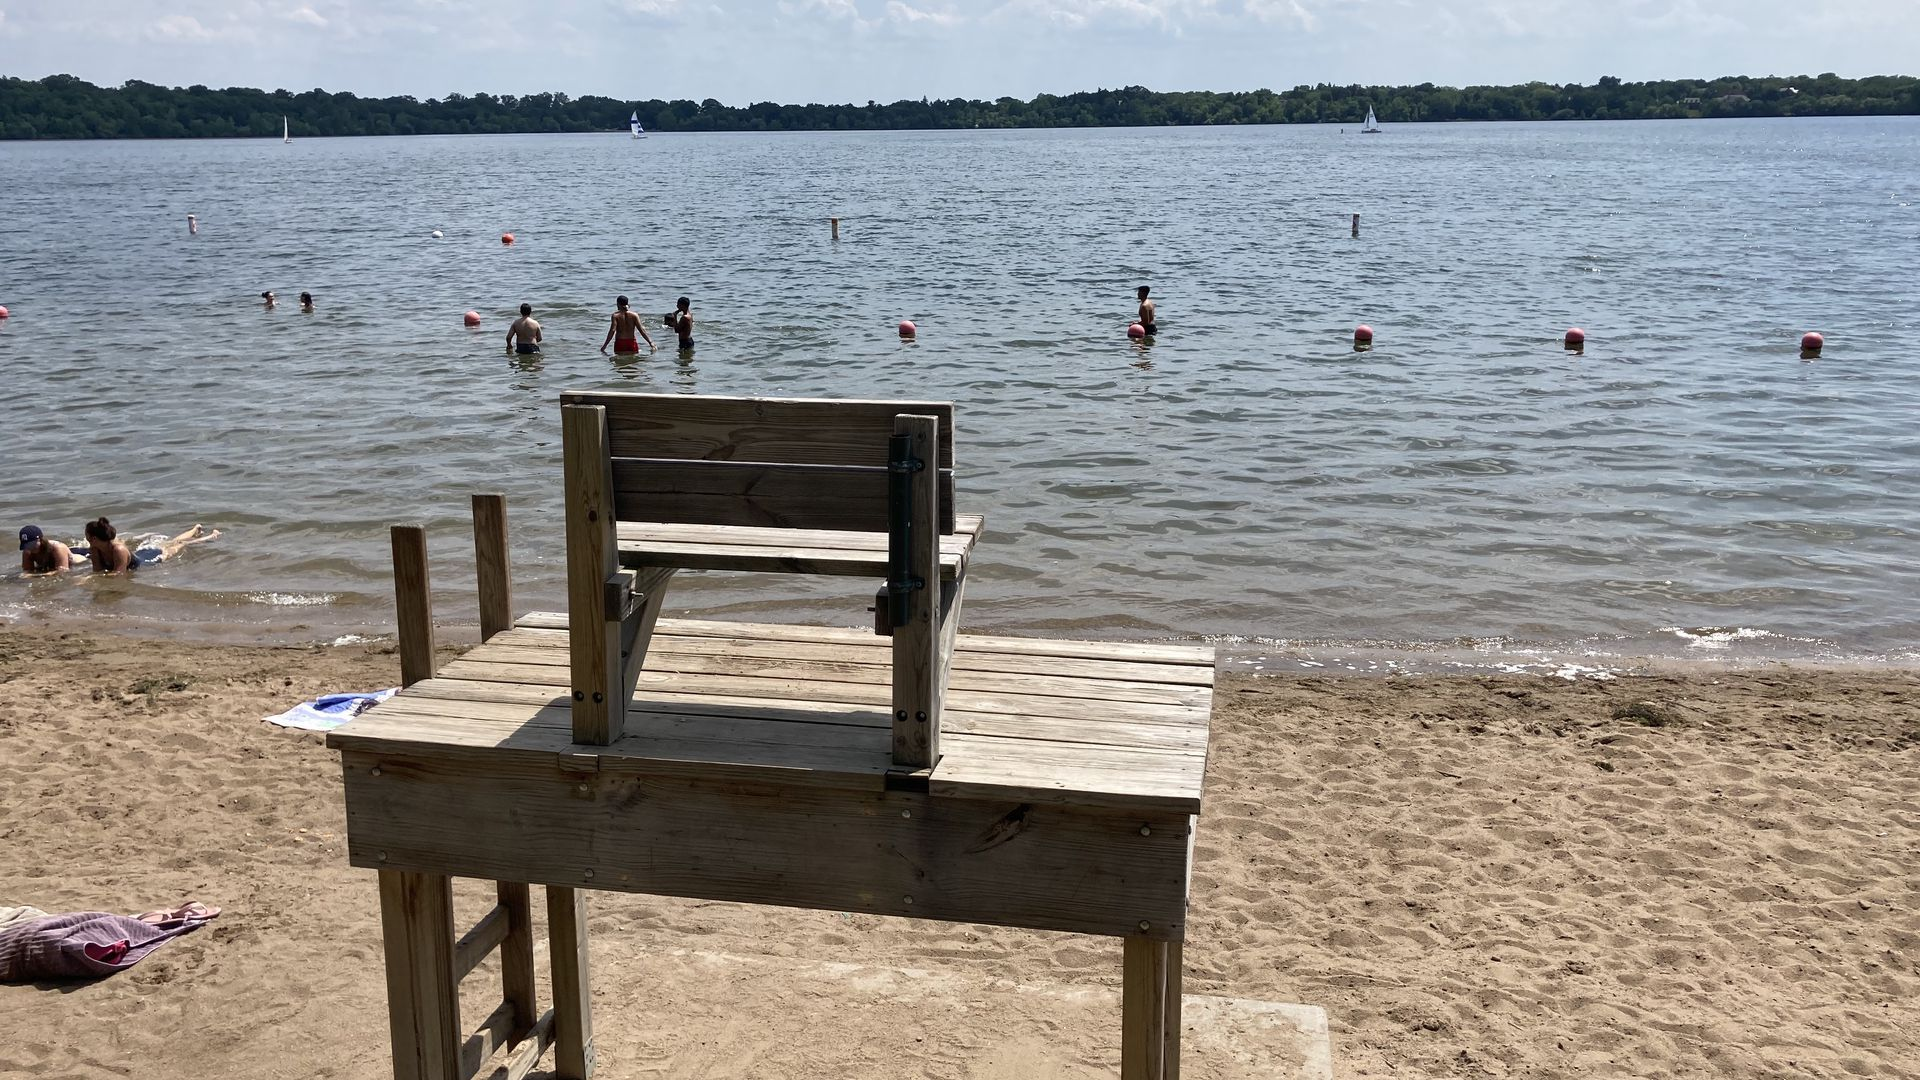 An empty lifeguard chair at Lake Harriet in Minneapolis.